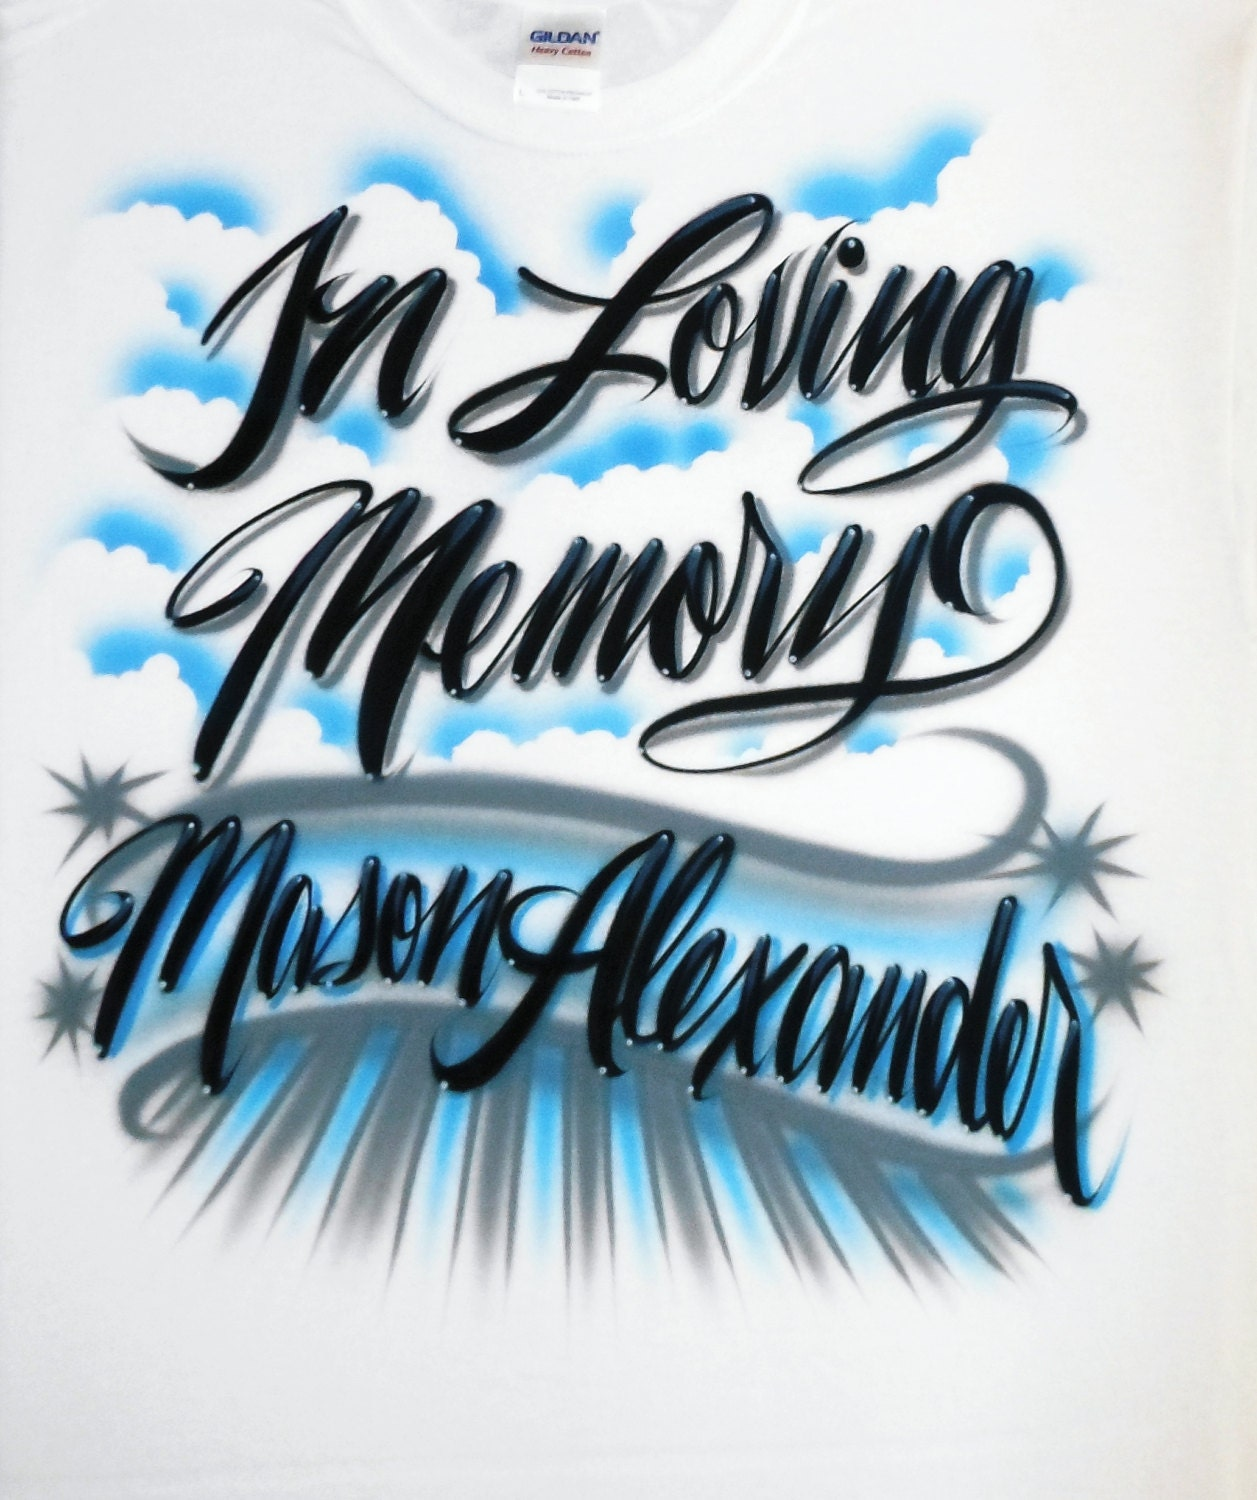 Airbrush T Shirt In Loving Memory With Two Word Name In